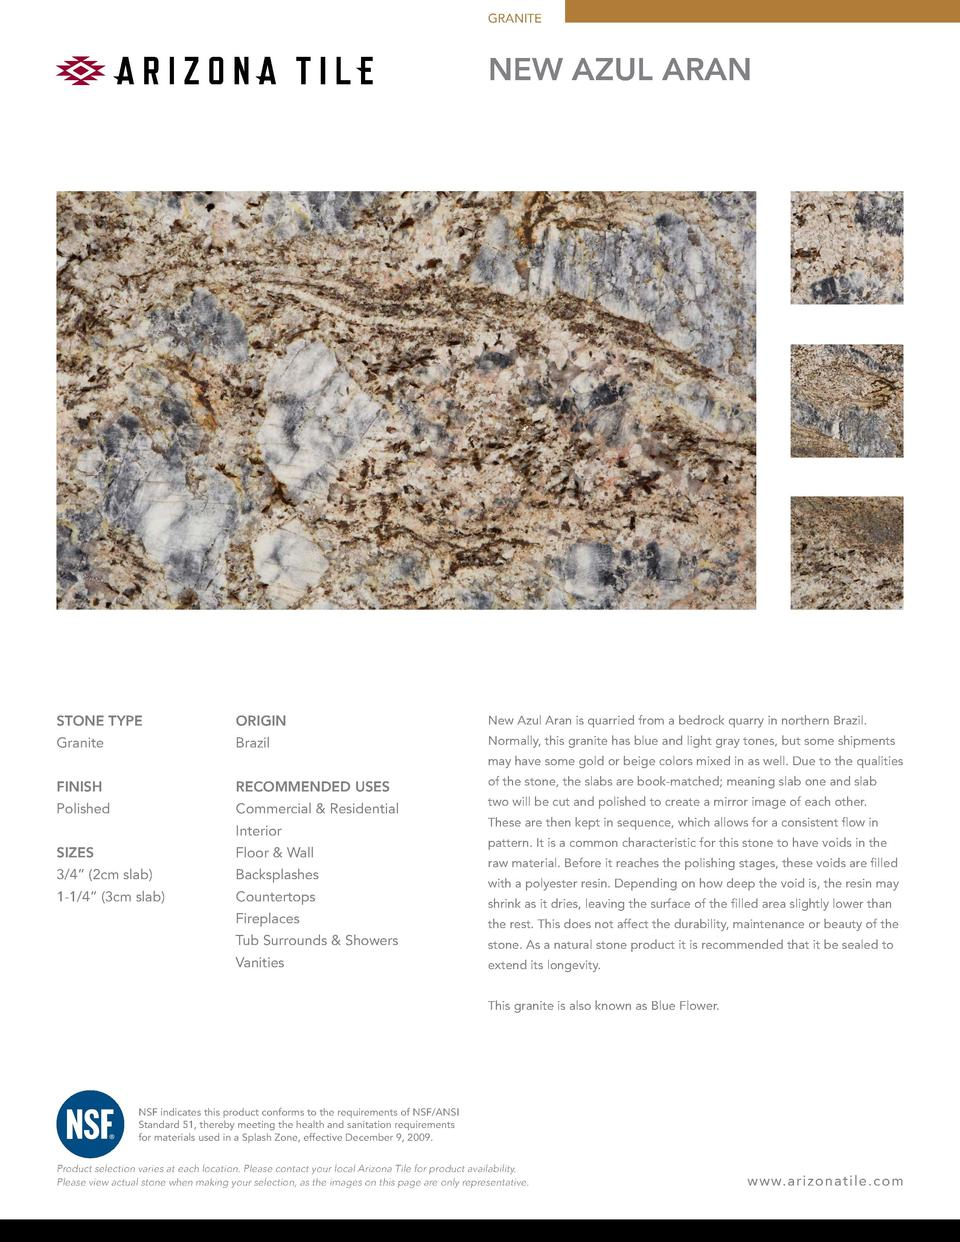 GRANITE  New Azul Aran  STONE TYPE  ORIGIN  New Azul Aran is quarried from a bedrock quarry in northern Brazil.  Granite  ...